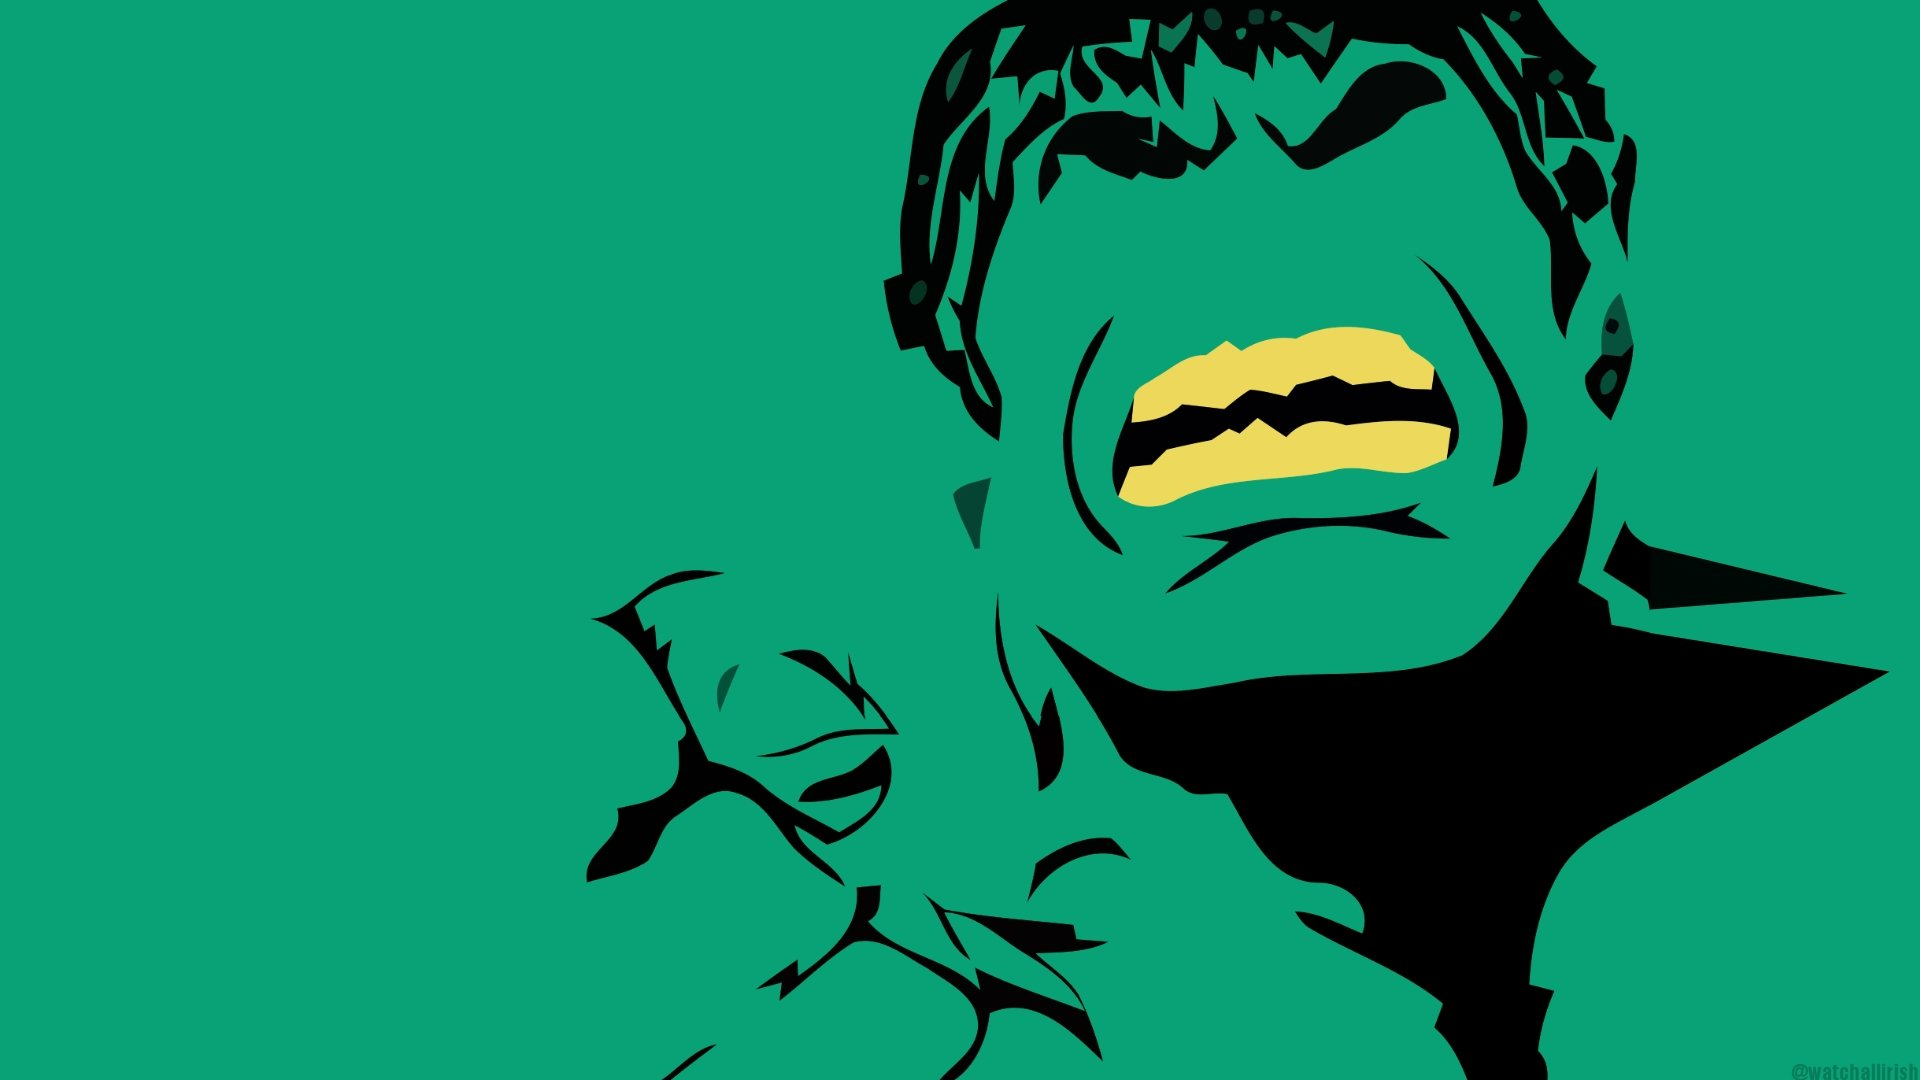 Free Download Hulk Smash Watchall Wallpapers 1920x1080 For Your